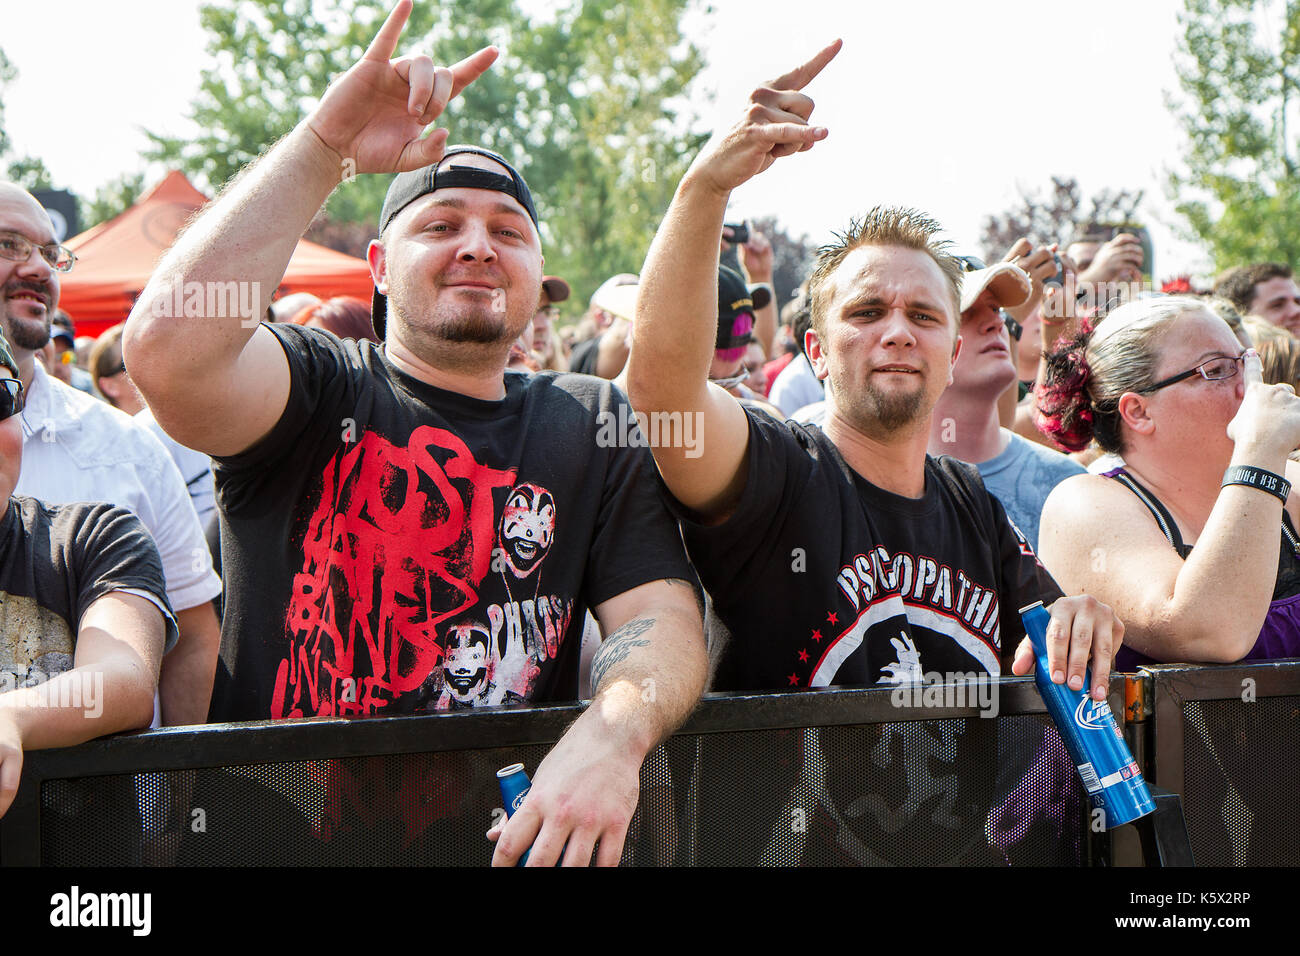 crowd at uproar festival having a good time - Stock Image